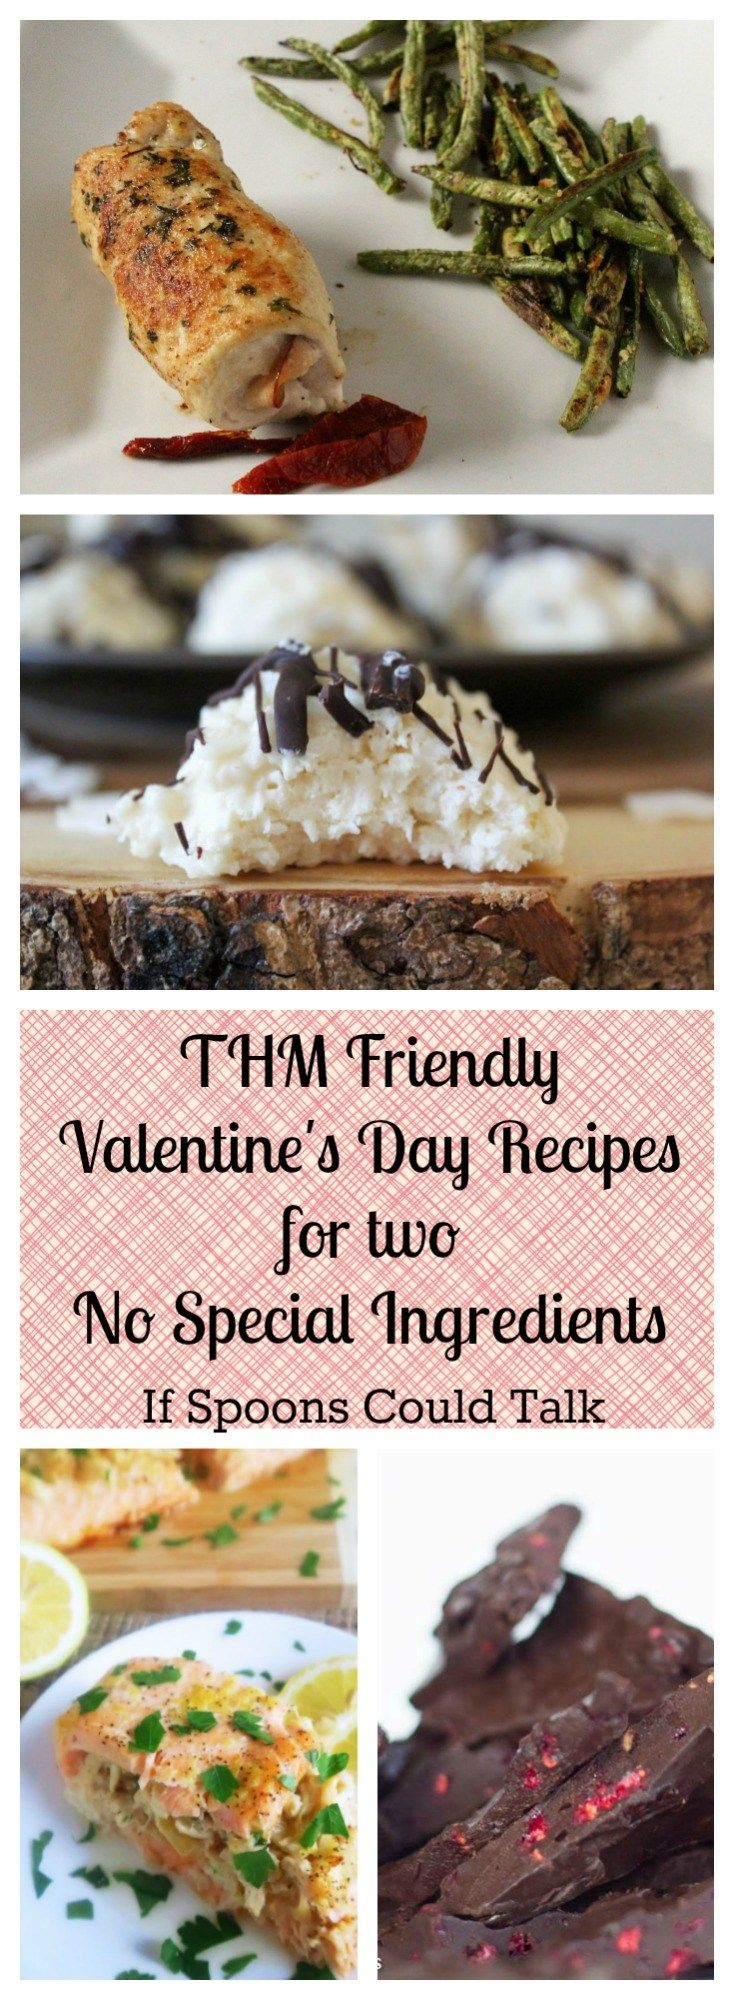 Healthy Valentine's Day Recipes that are all on Trim Healthy Mama and have no special ingredients. They are easy but look fancy, perfect for a weeknight Valentines